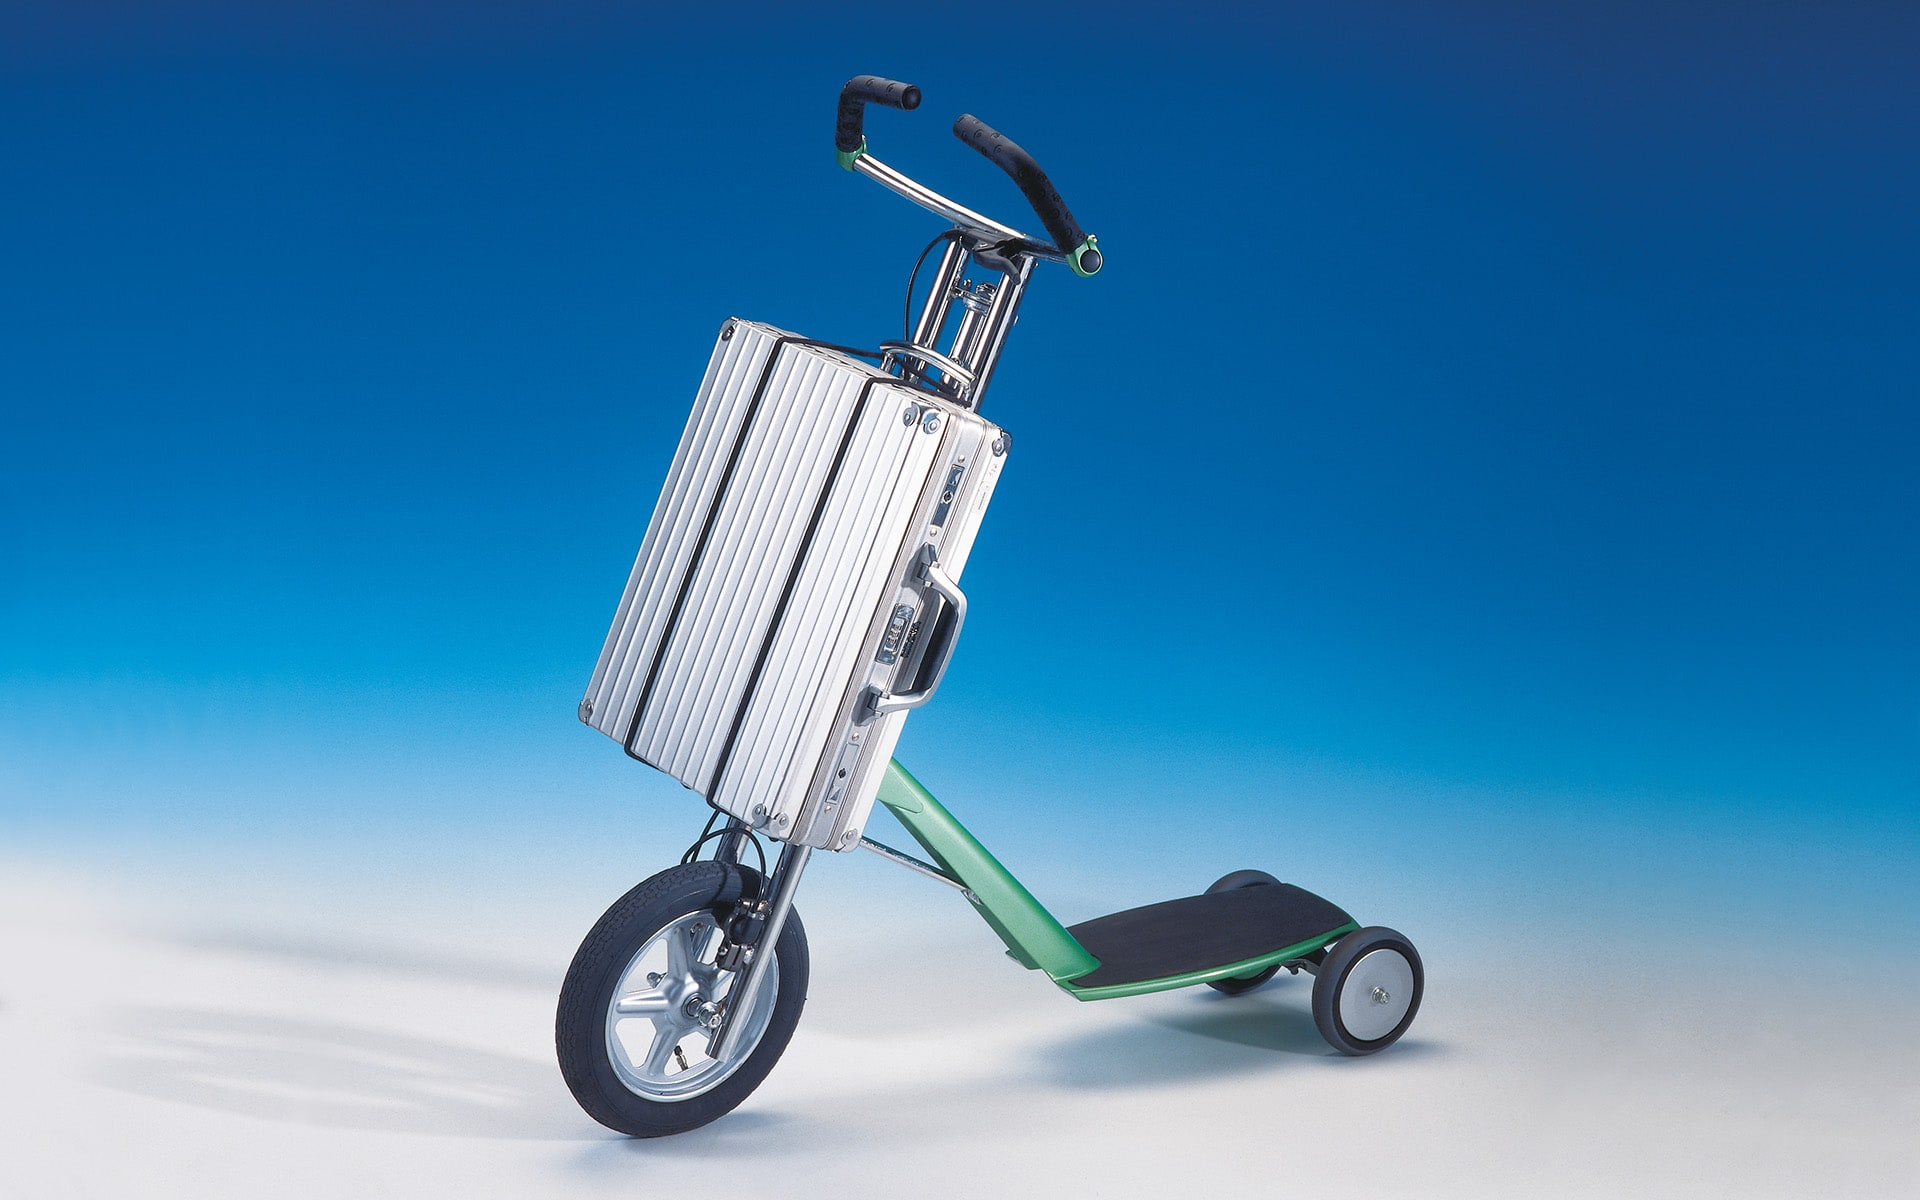 ITO Design in-house study city cityscooter with attached aluminium suitcase, created in 1992